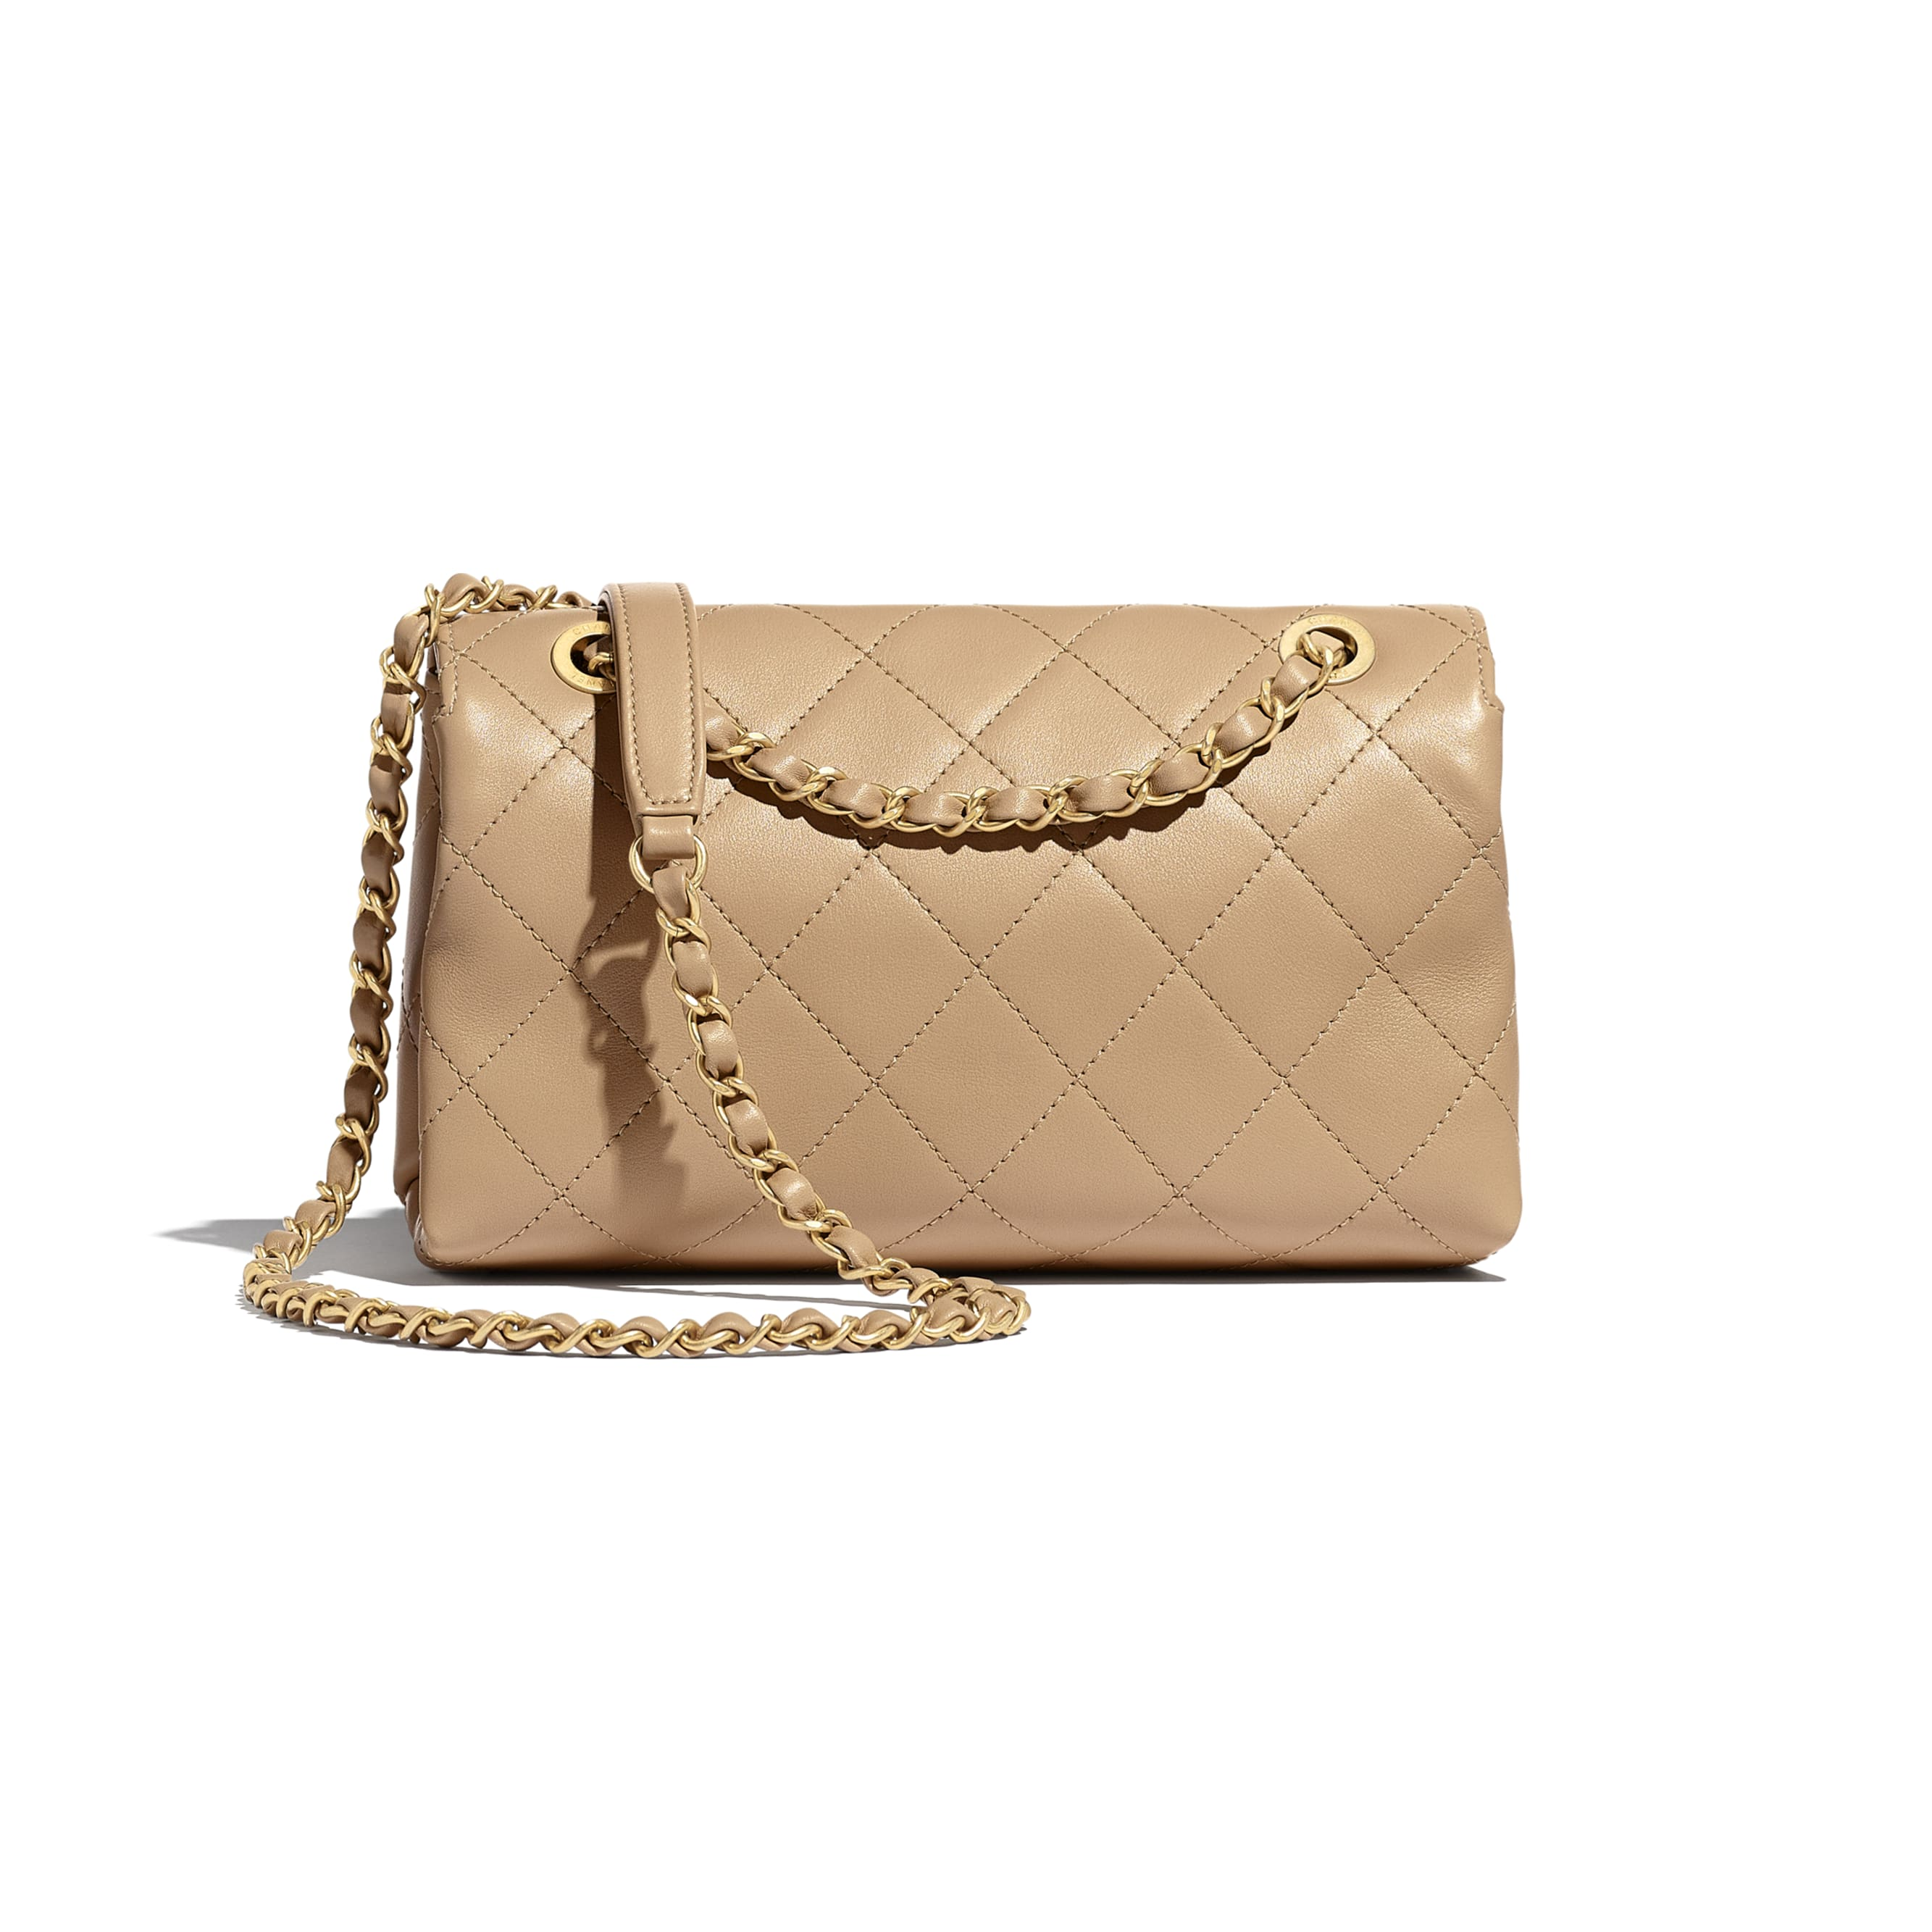 Small Flap Bag - Beige - Calfskin & Gold-Tone Metal - Alternative view - see standard sized version